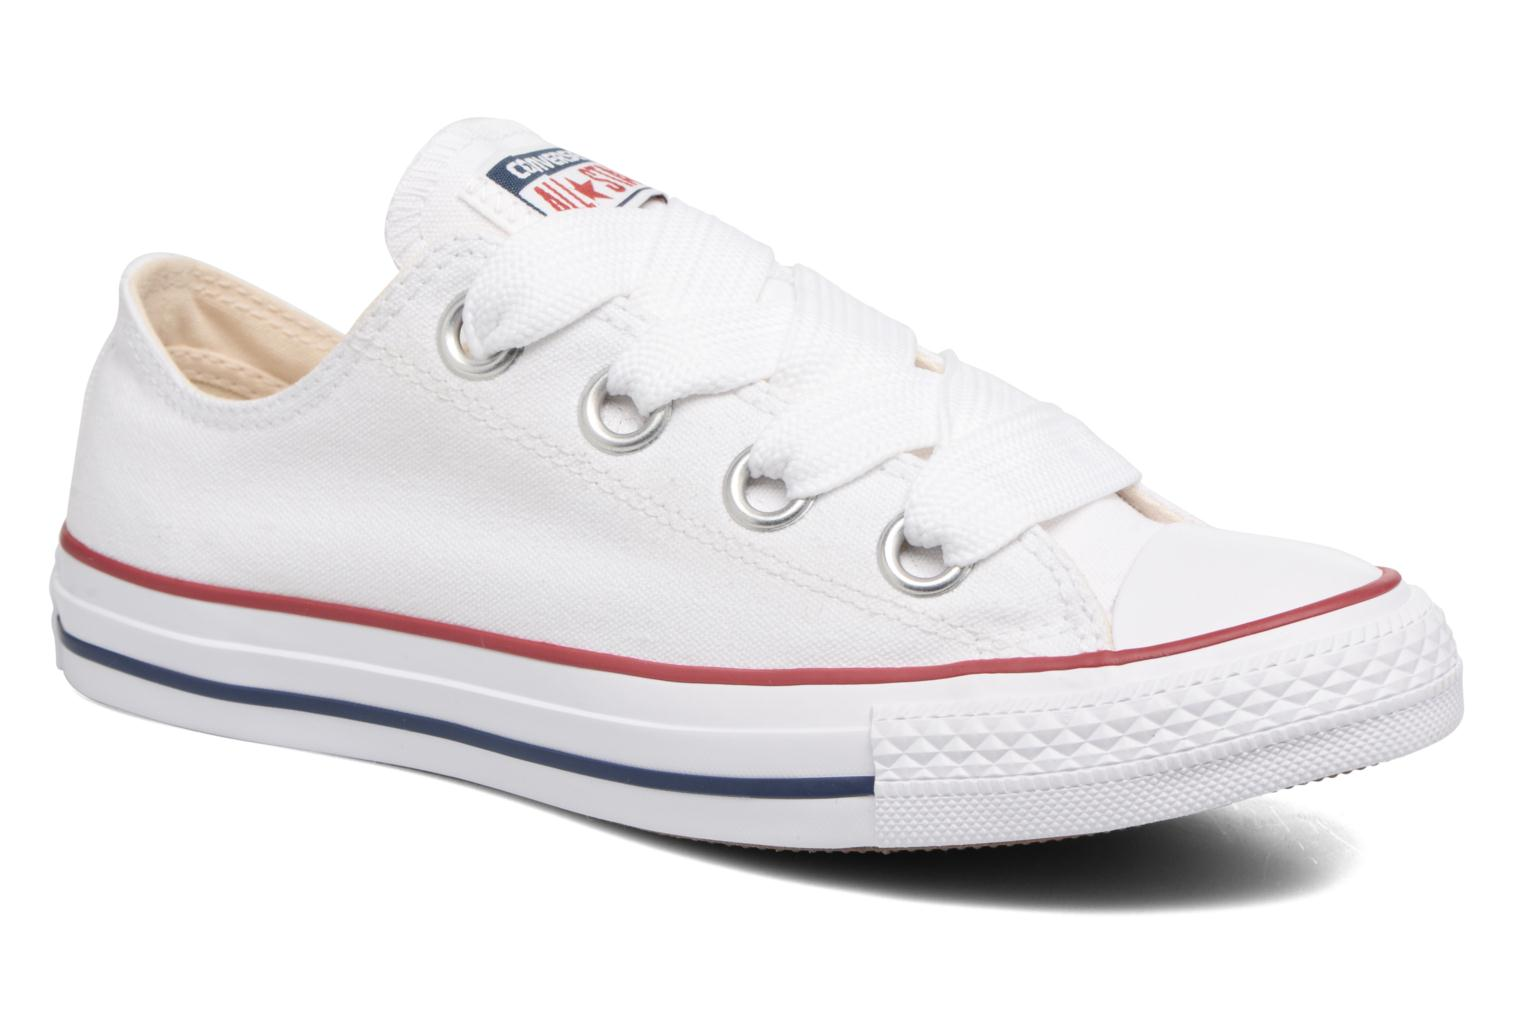 converse blanche pointure 21